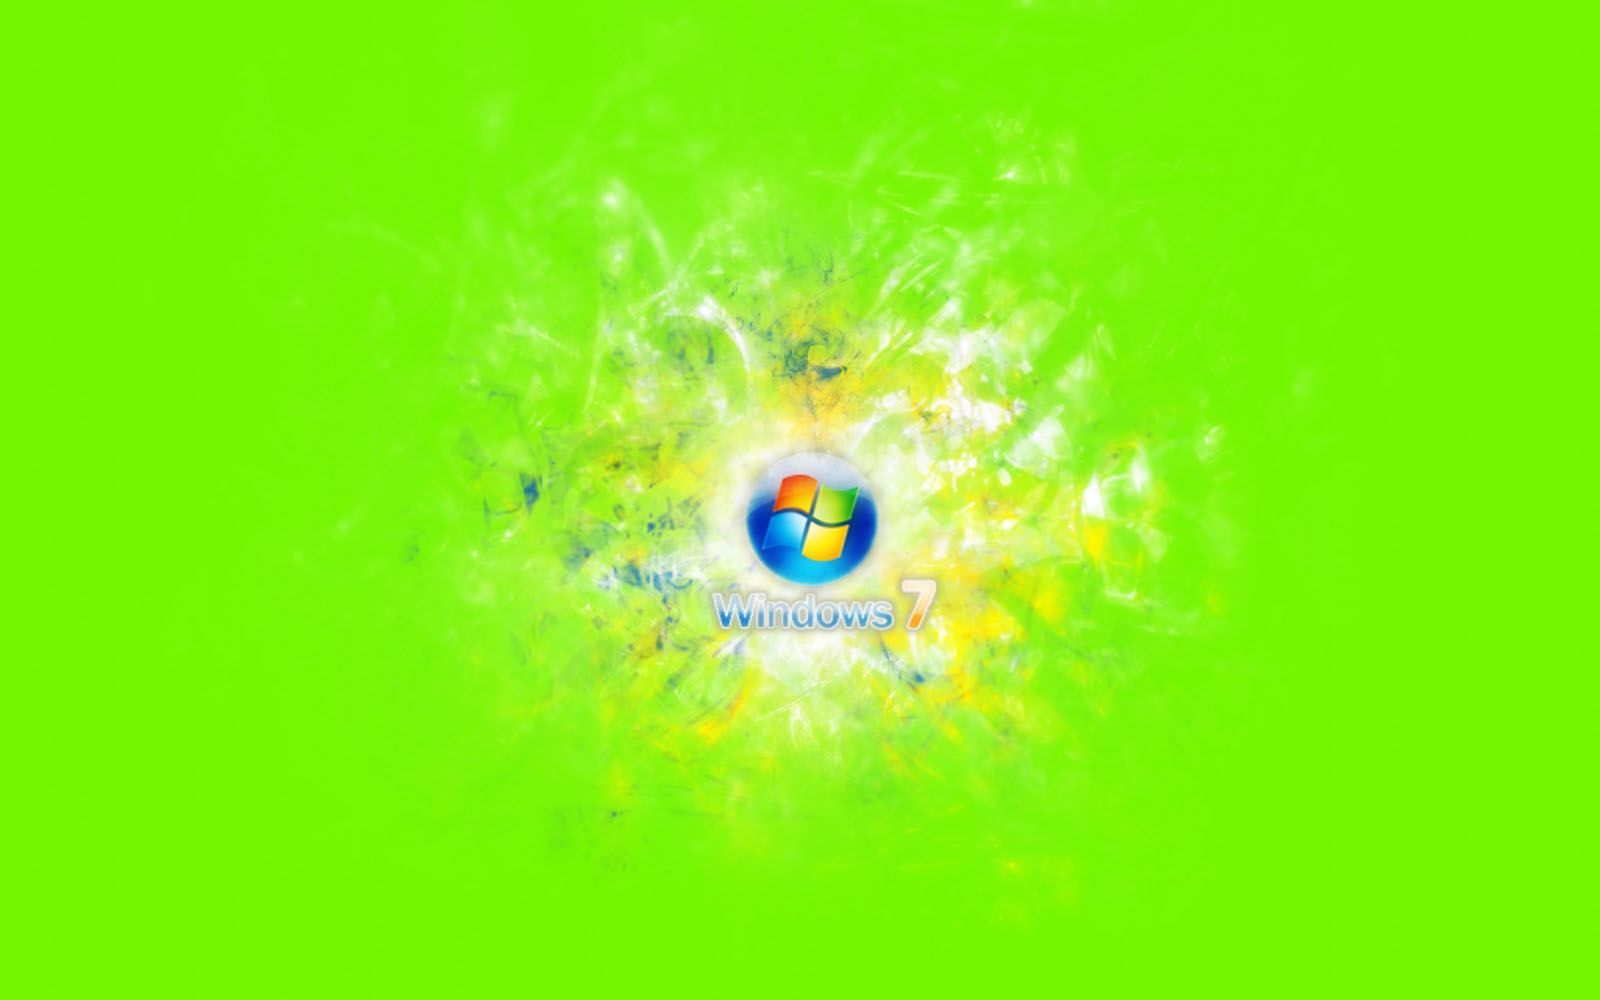 Windows 7 Bright Wallpapers   Top Wallpaper Desktop 1600x1000